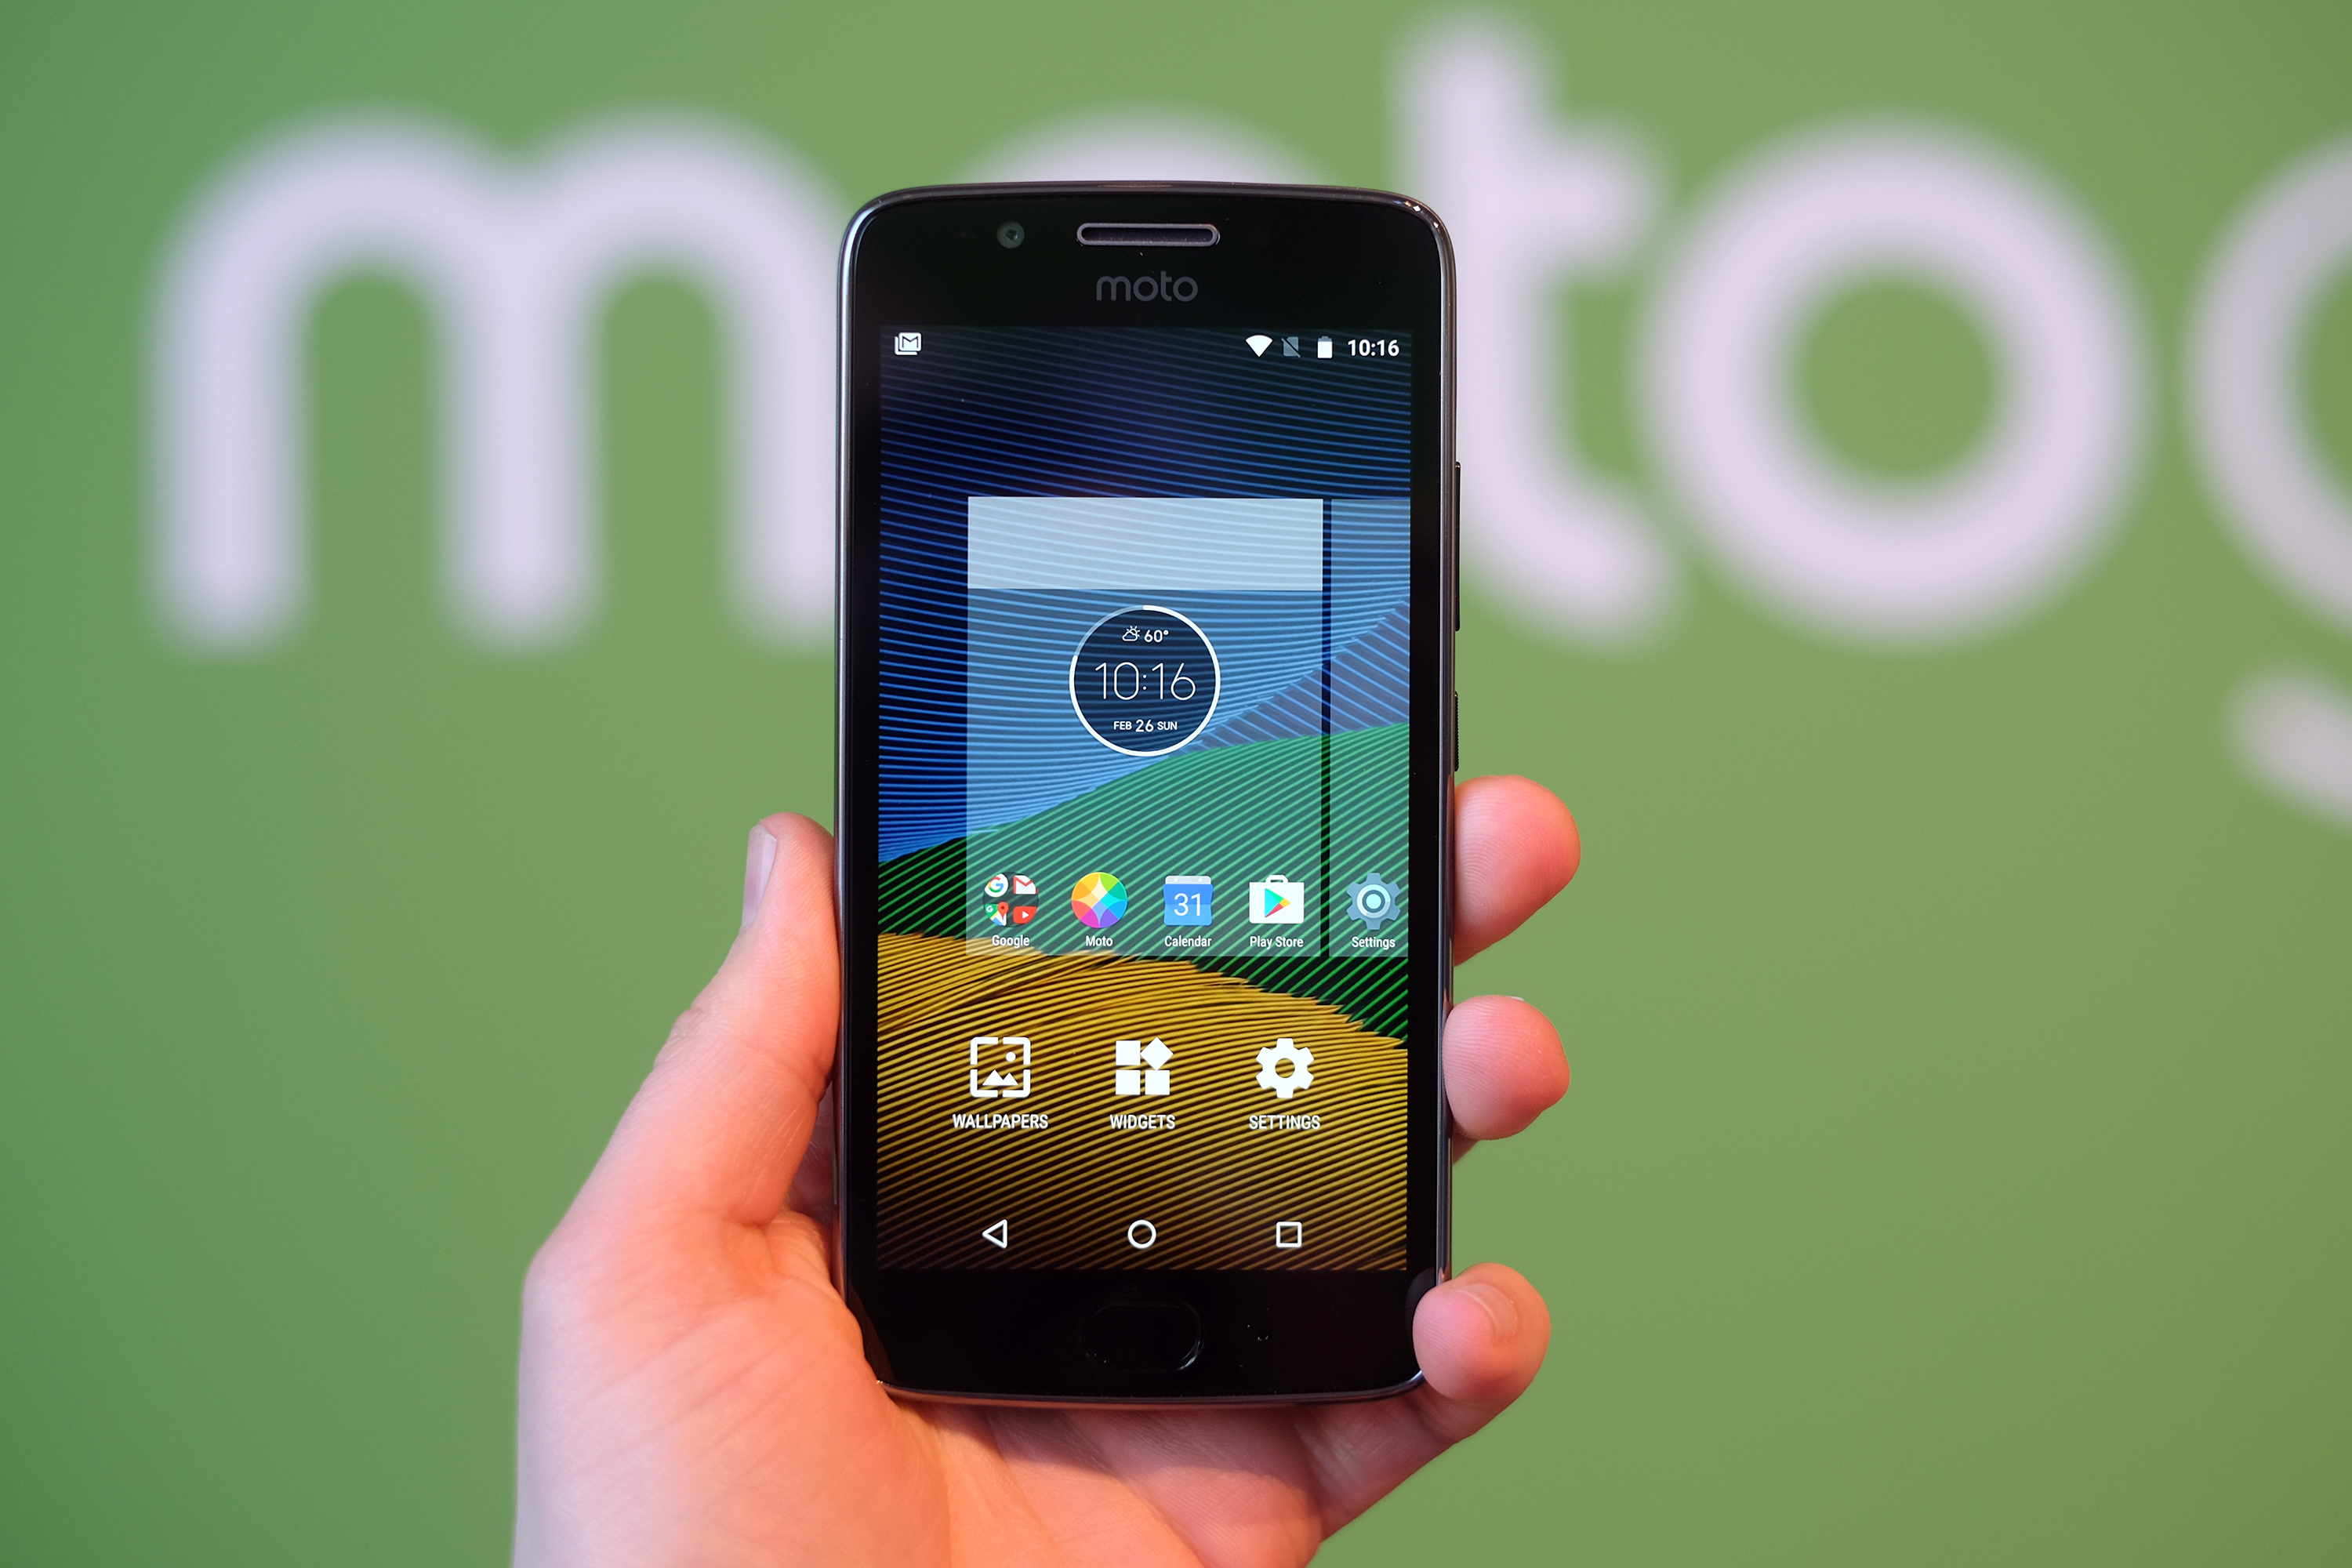 Moto G5 hands-on: A solid, metal-ish budget phone with